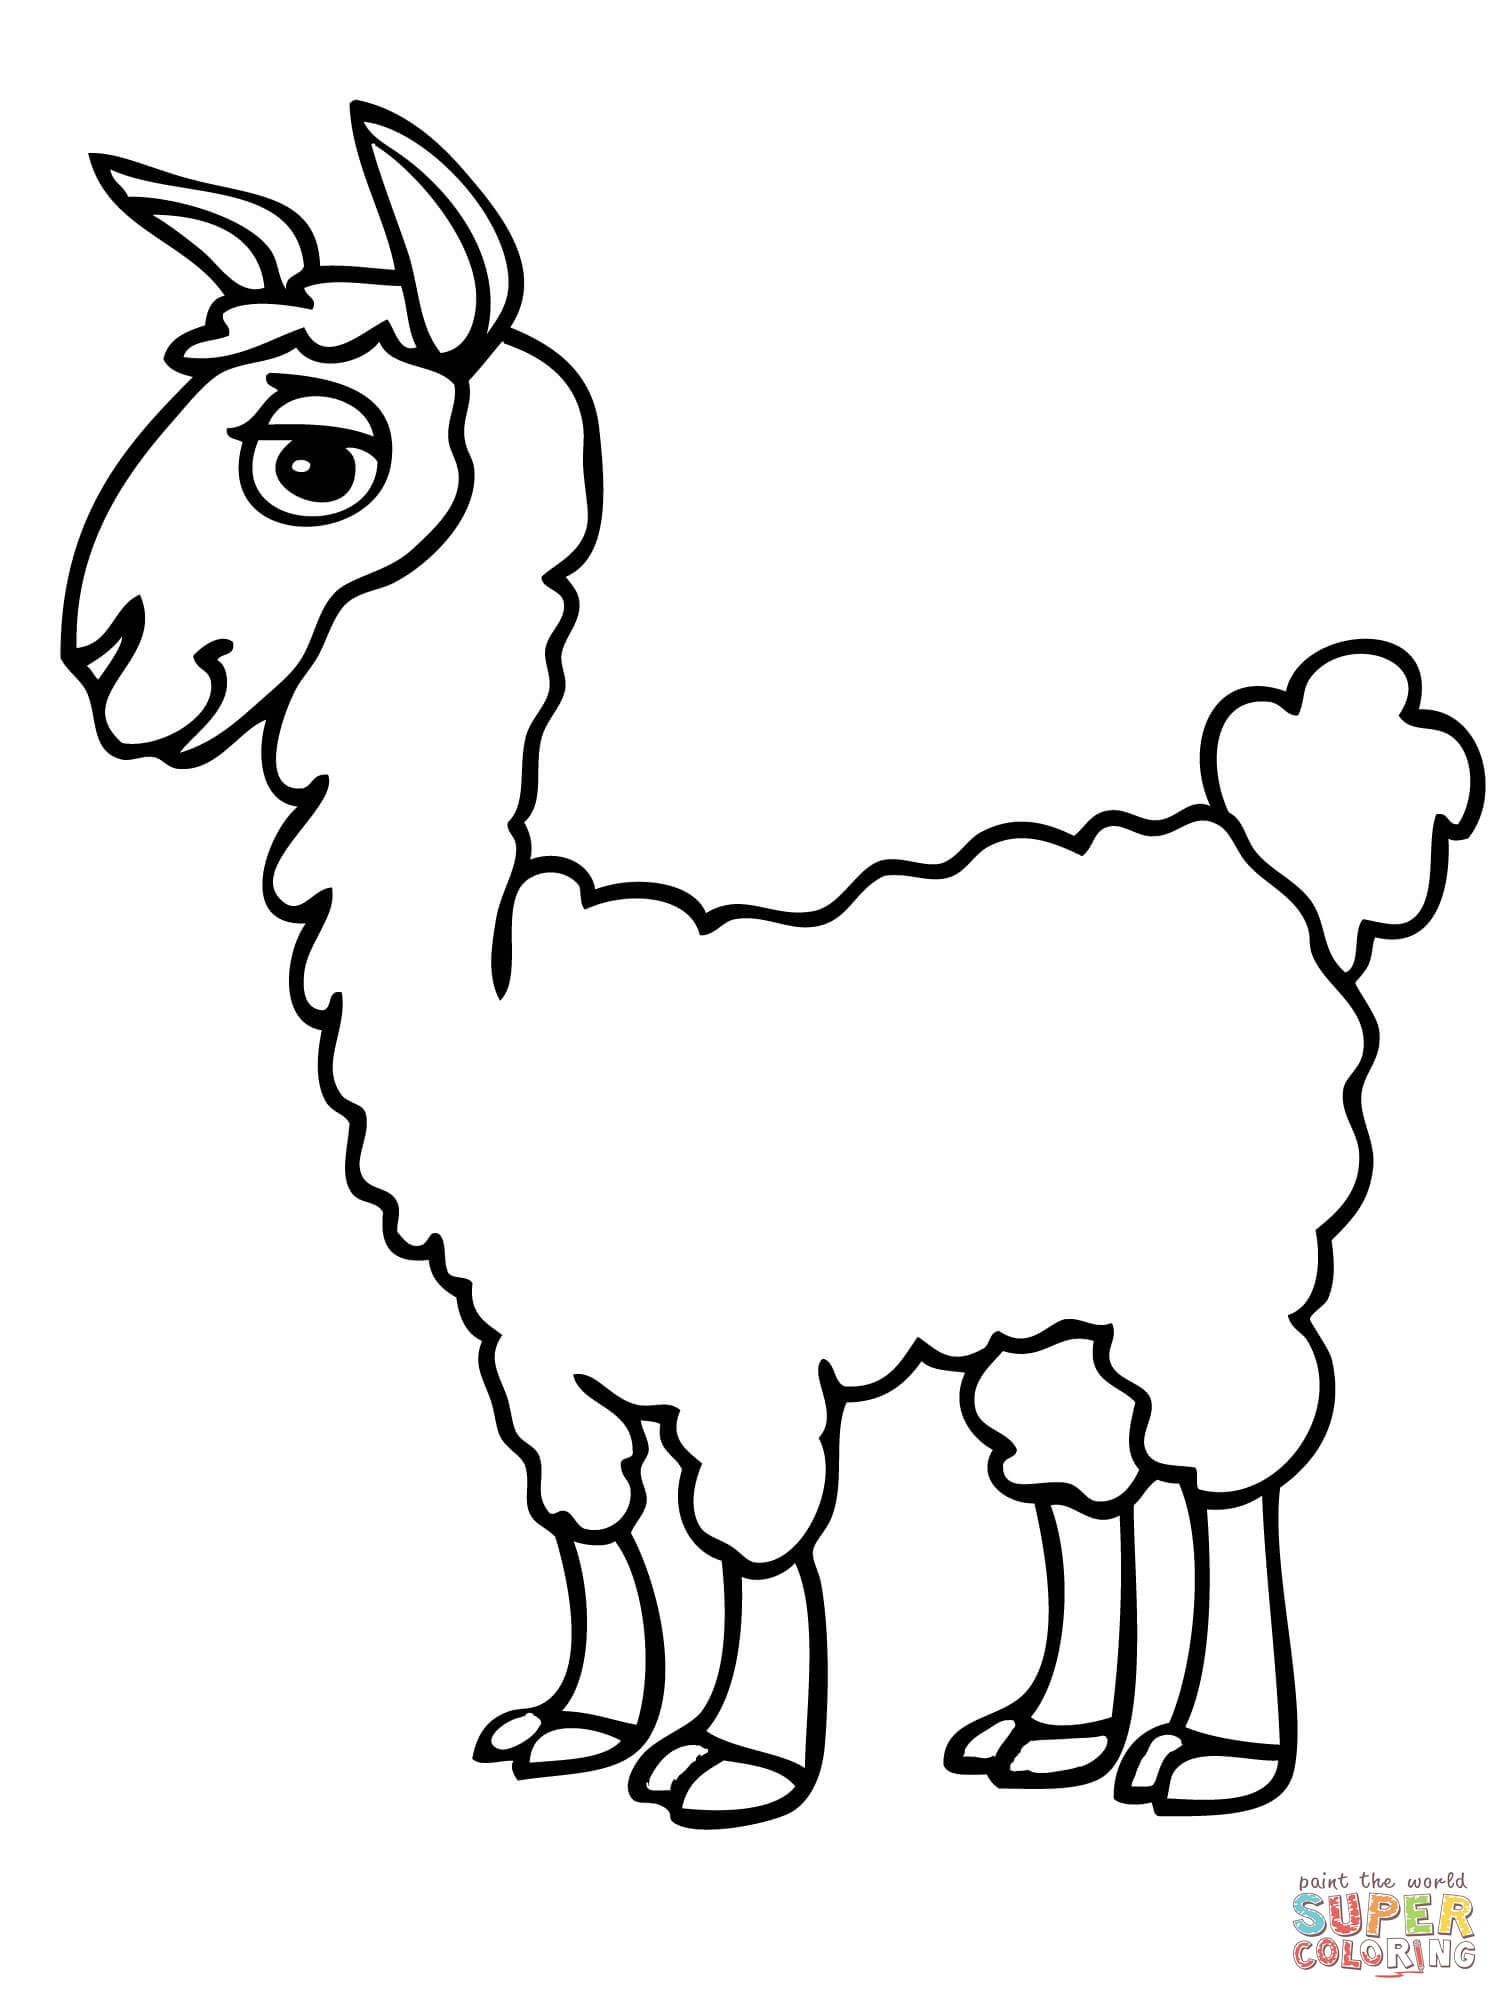 Cute Alpaca Coloring Page Free Printable Coloring Pages Unicorn Coloring Pages Cute Coloring Pages Owl Coloring Pages